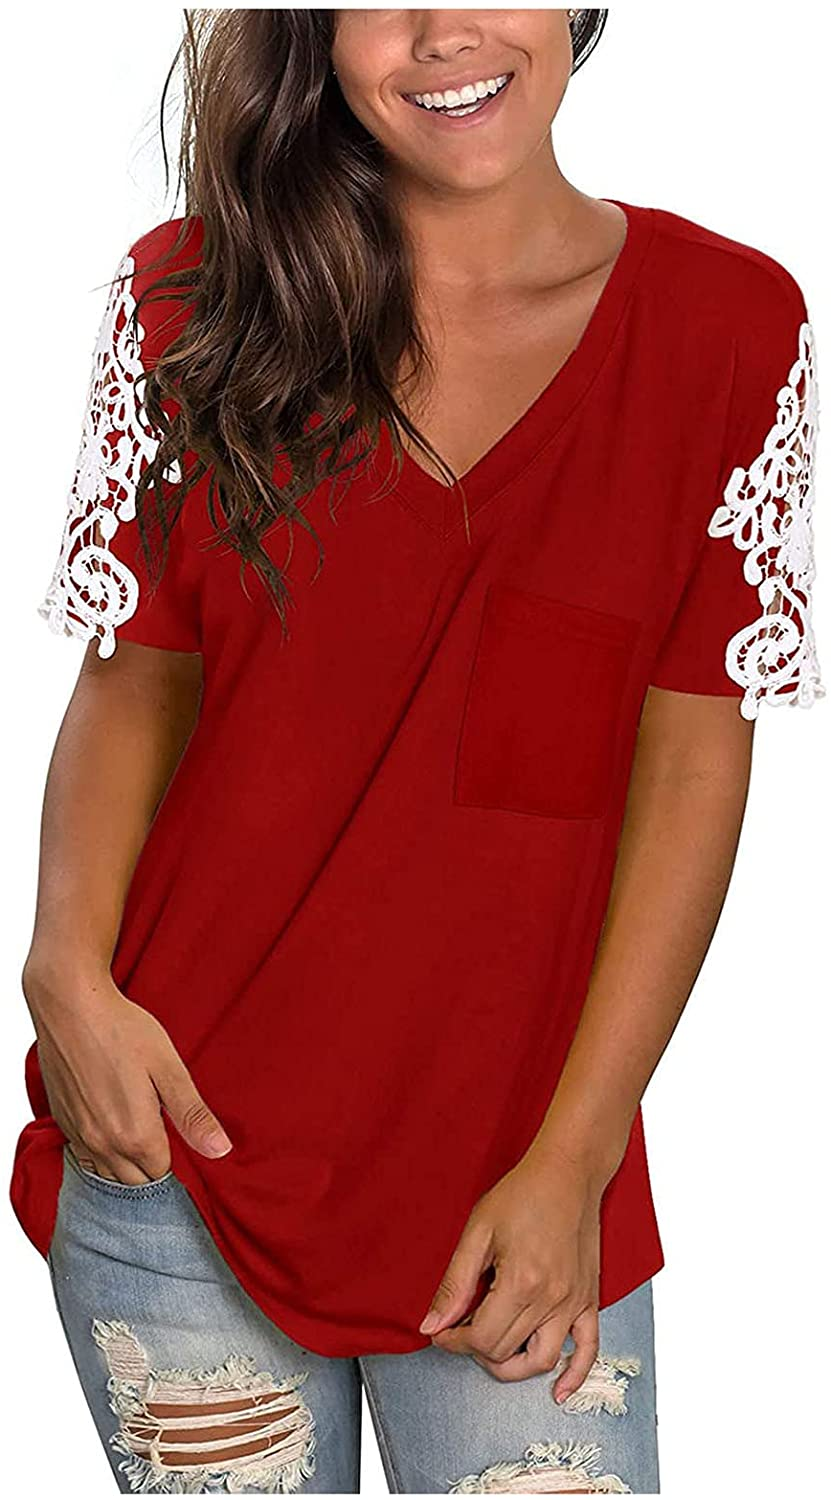 Jaqqra Summer Tops for Women, Womens Short Sleeve Tops Lace Soild Color V-Neck Flowy T-Shirts Basic Loose Tunic Tee Top